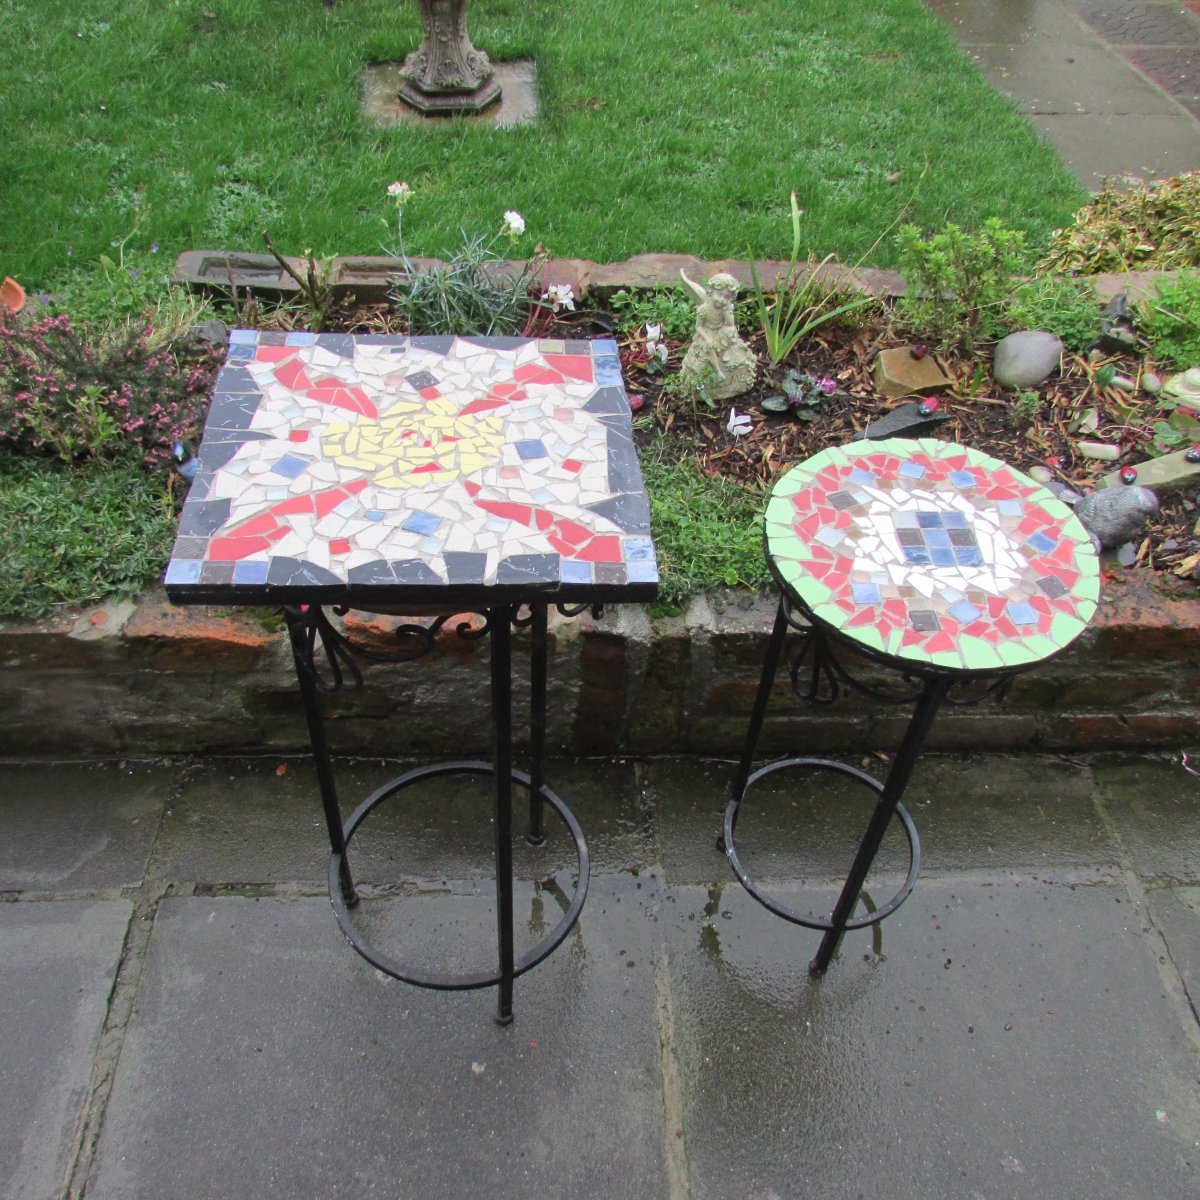 How to Make a Mosaic Table Top with Ceramic Tiles